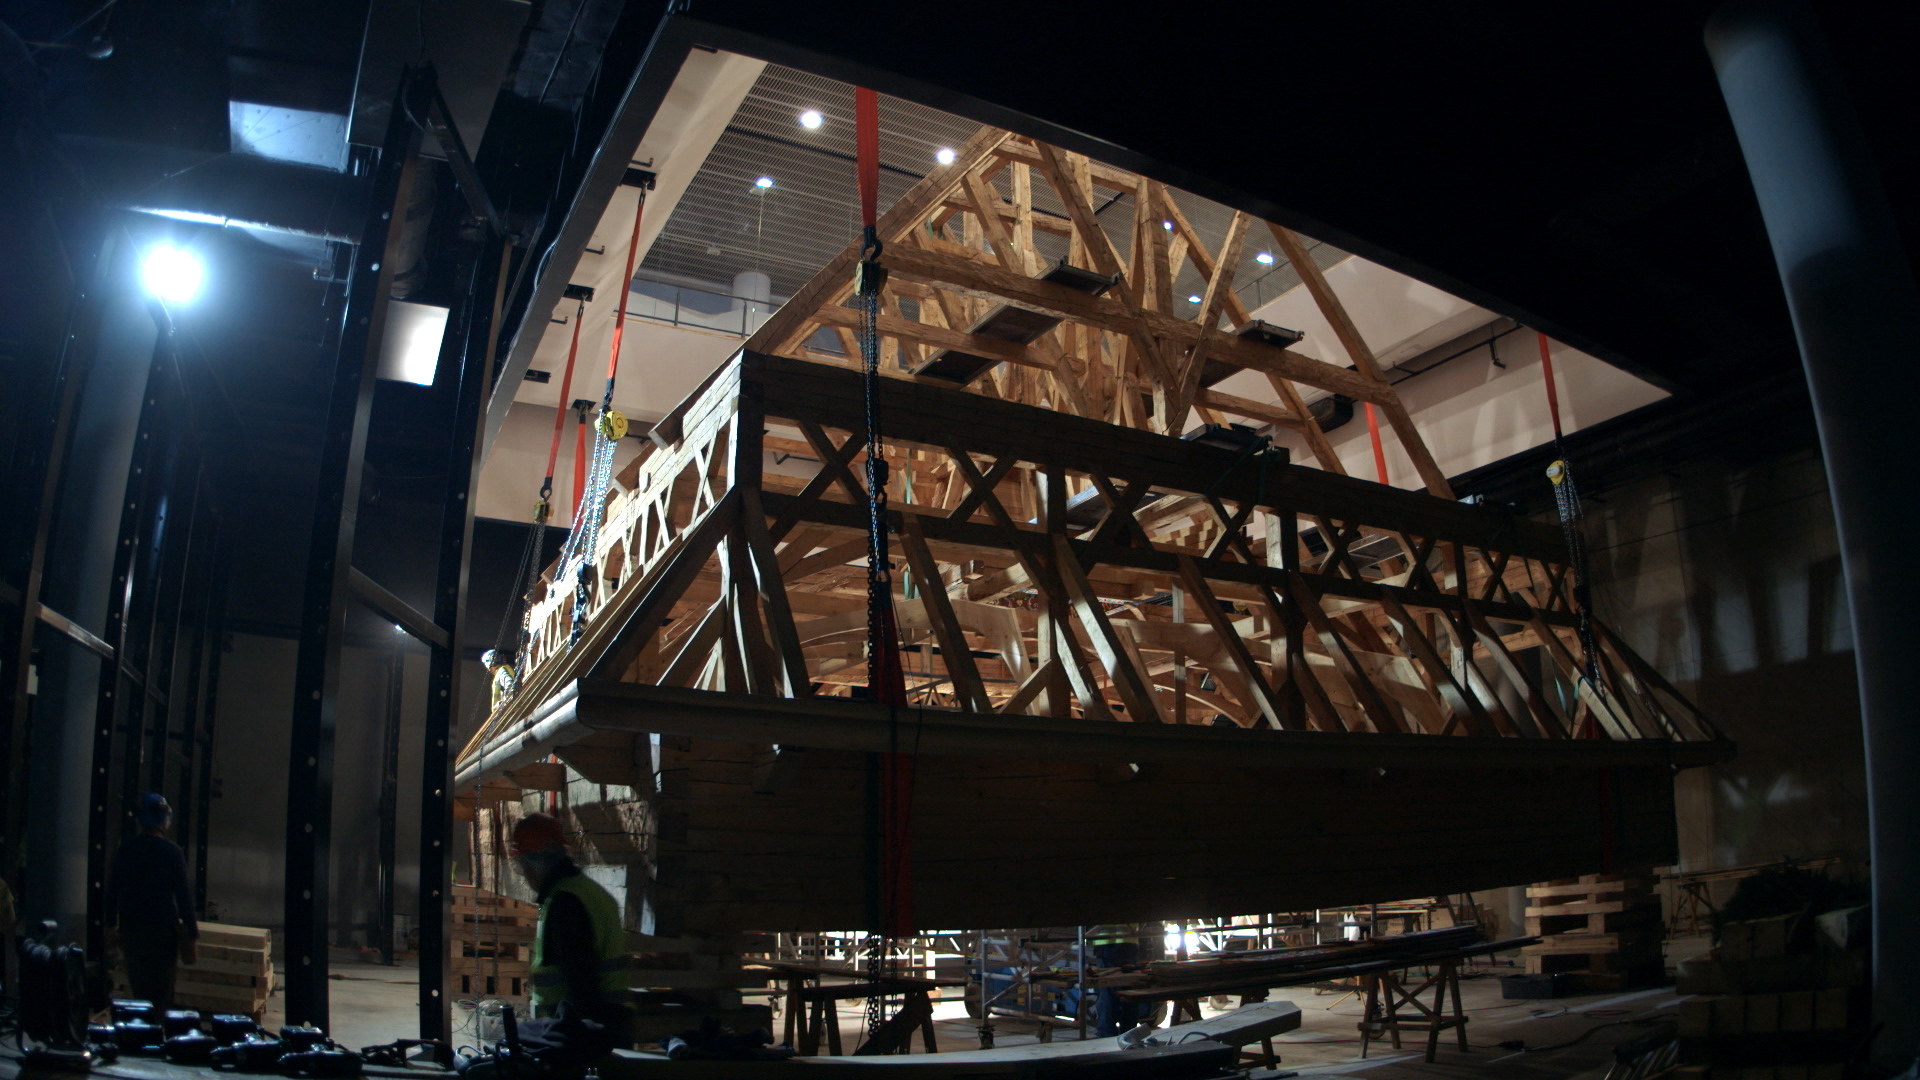 Still 43:  The Gwoździec roof structure is hoisted into place using many chainfalls.